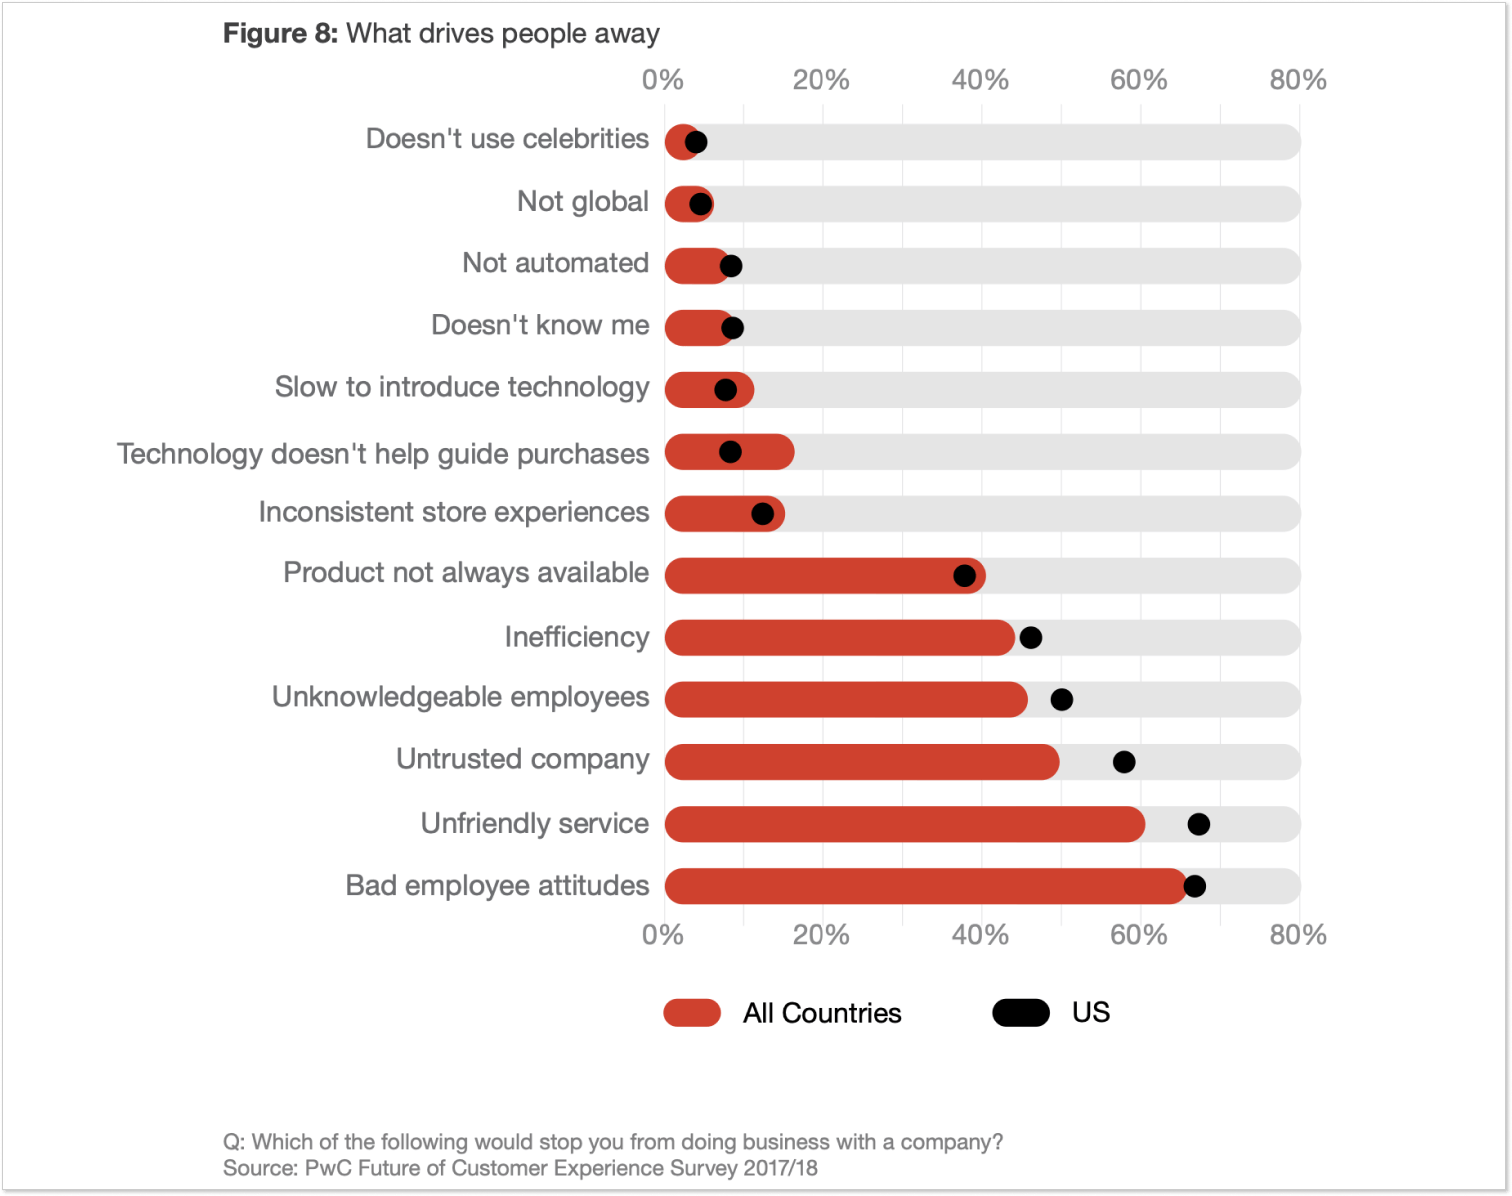 Customer experience survey by PwC